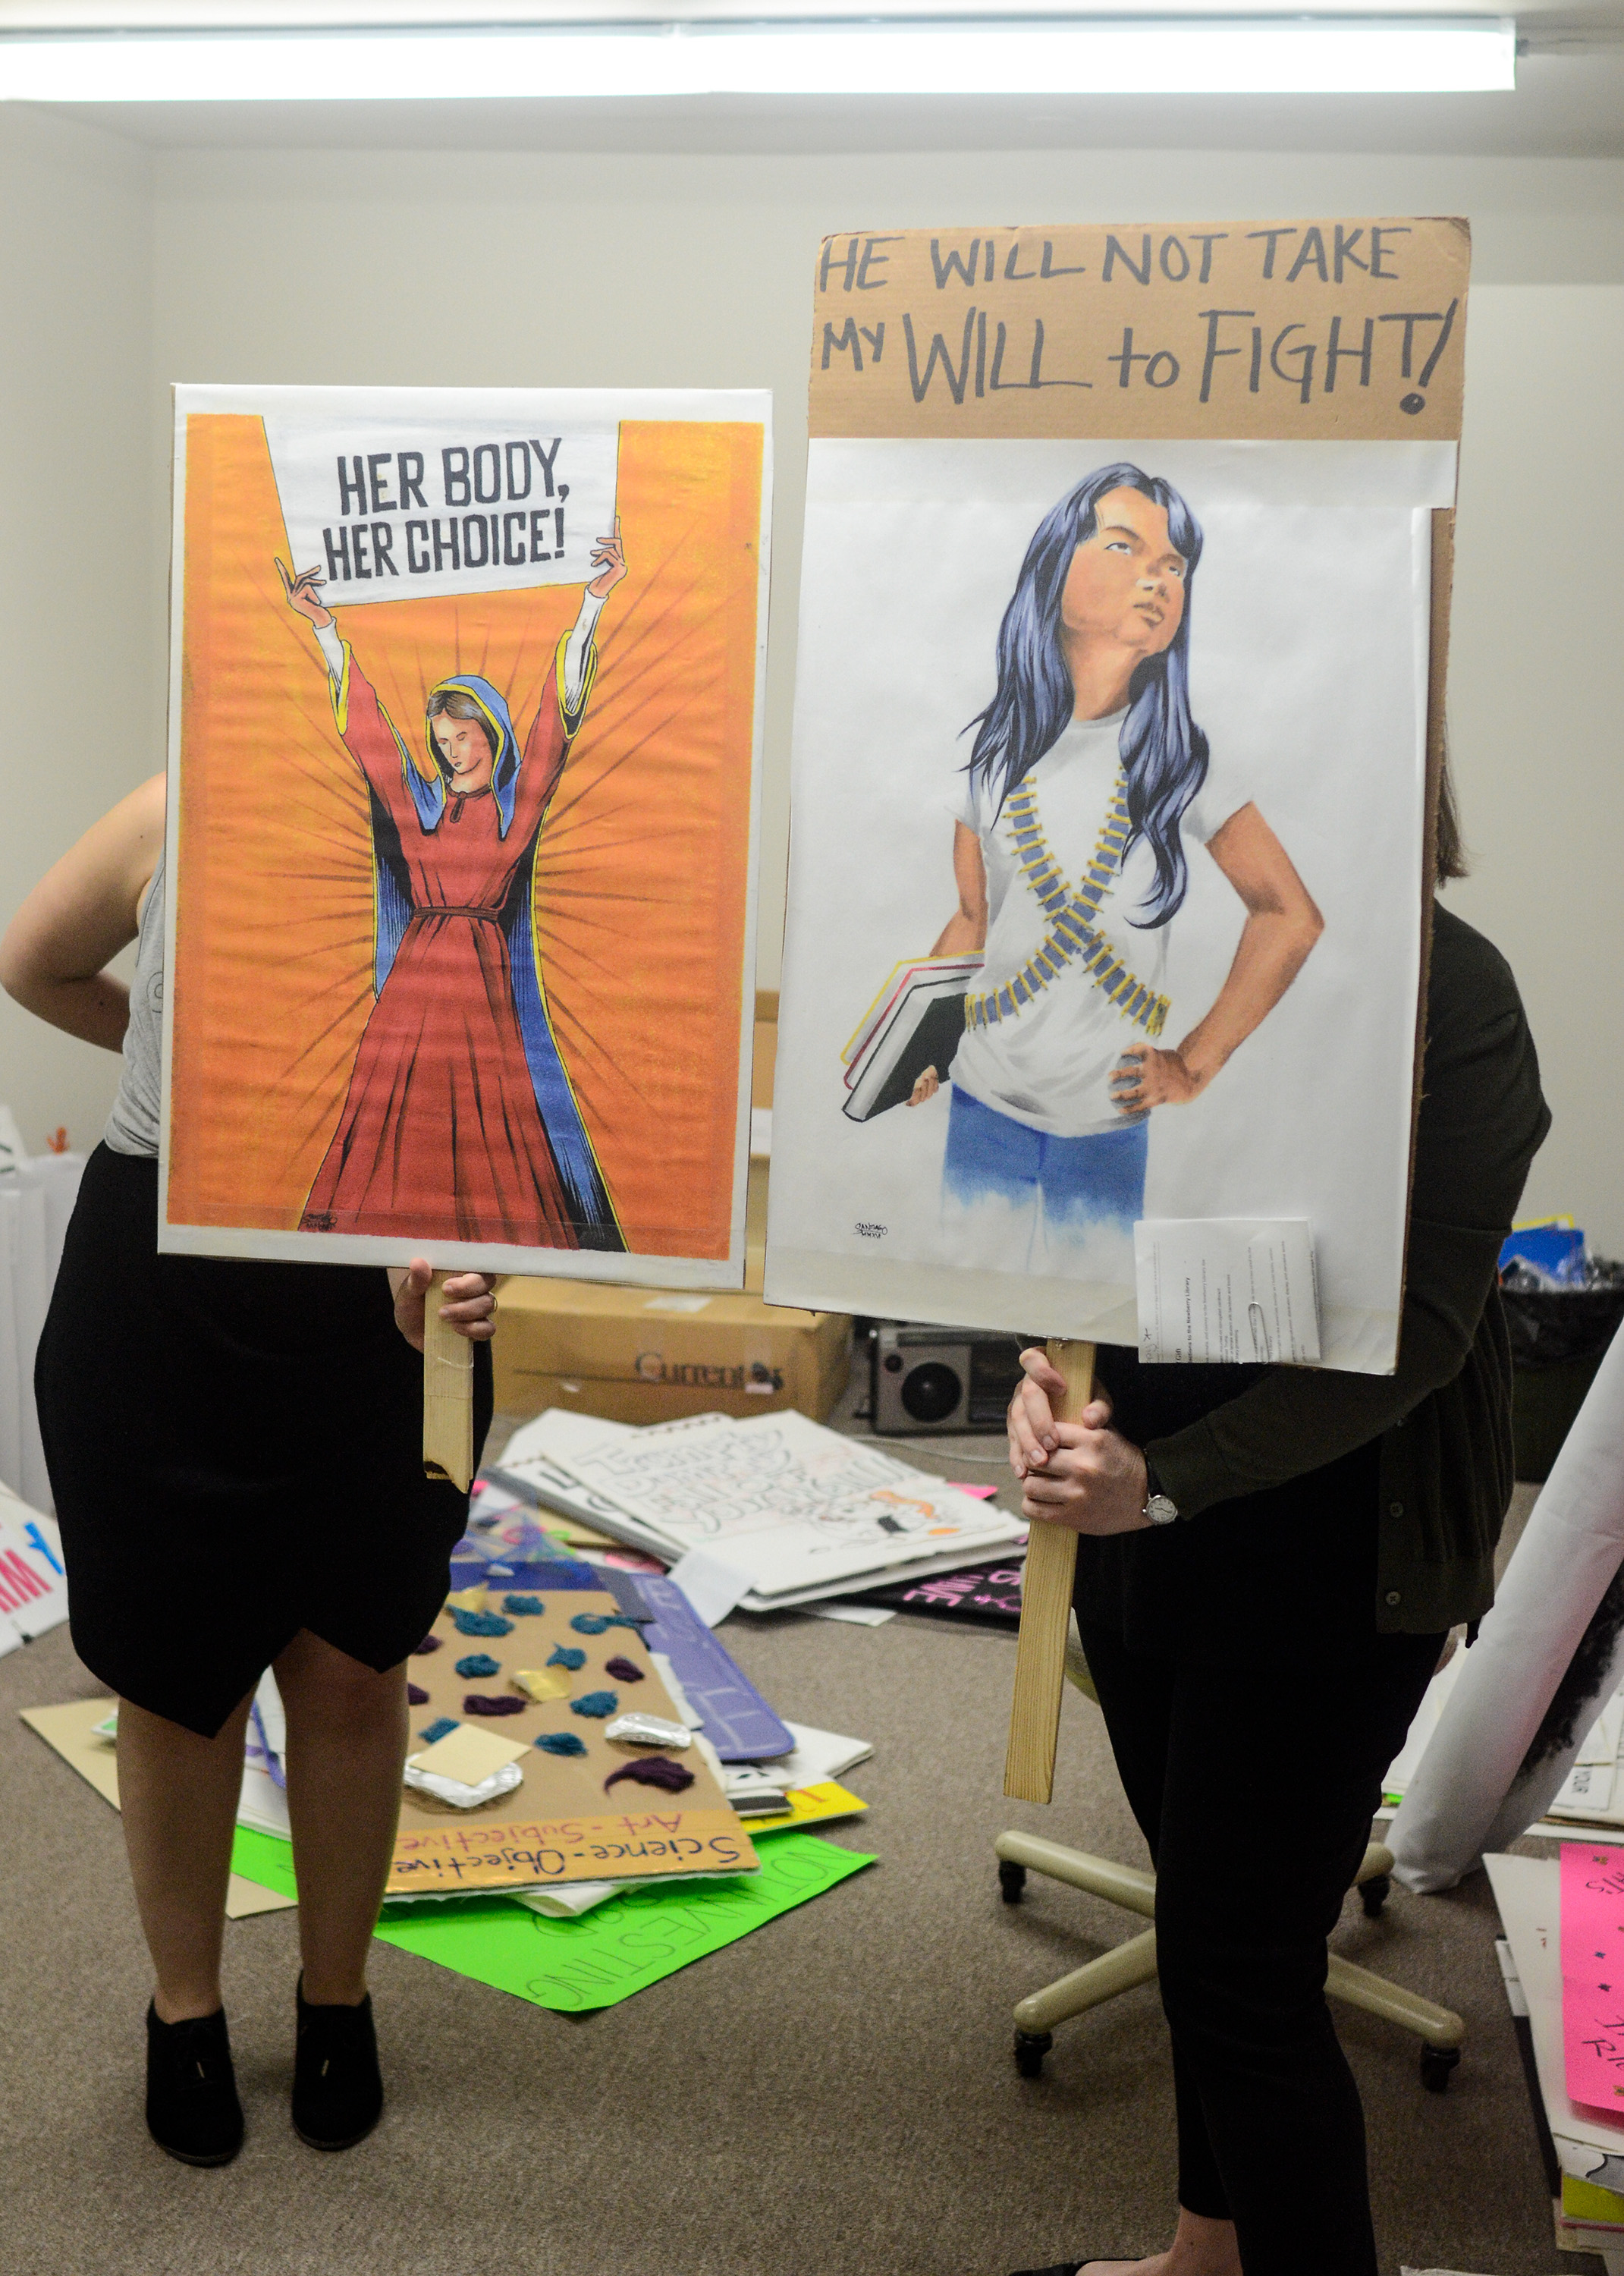 """Image: Catherine Grandgeorge and Jennifer Patiño Cervantes hold up signs in front of them. The two signs are of images made by and donated by artists Adrian Santiago-Alvarez. One shows a Virgin Mary like figure holding a sign that says """"Her Body Her Choice."""" The other shows a defiant young woman holding books and wearing bandoliers under a sign that says """"He Will Not Take My Will to Fight!"""" Image by William Camargo."""